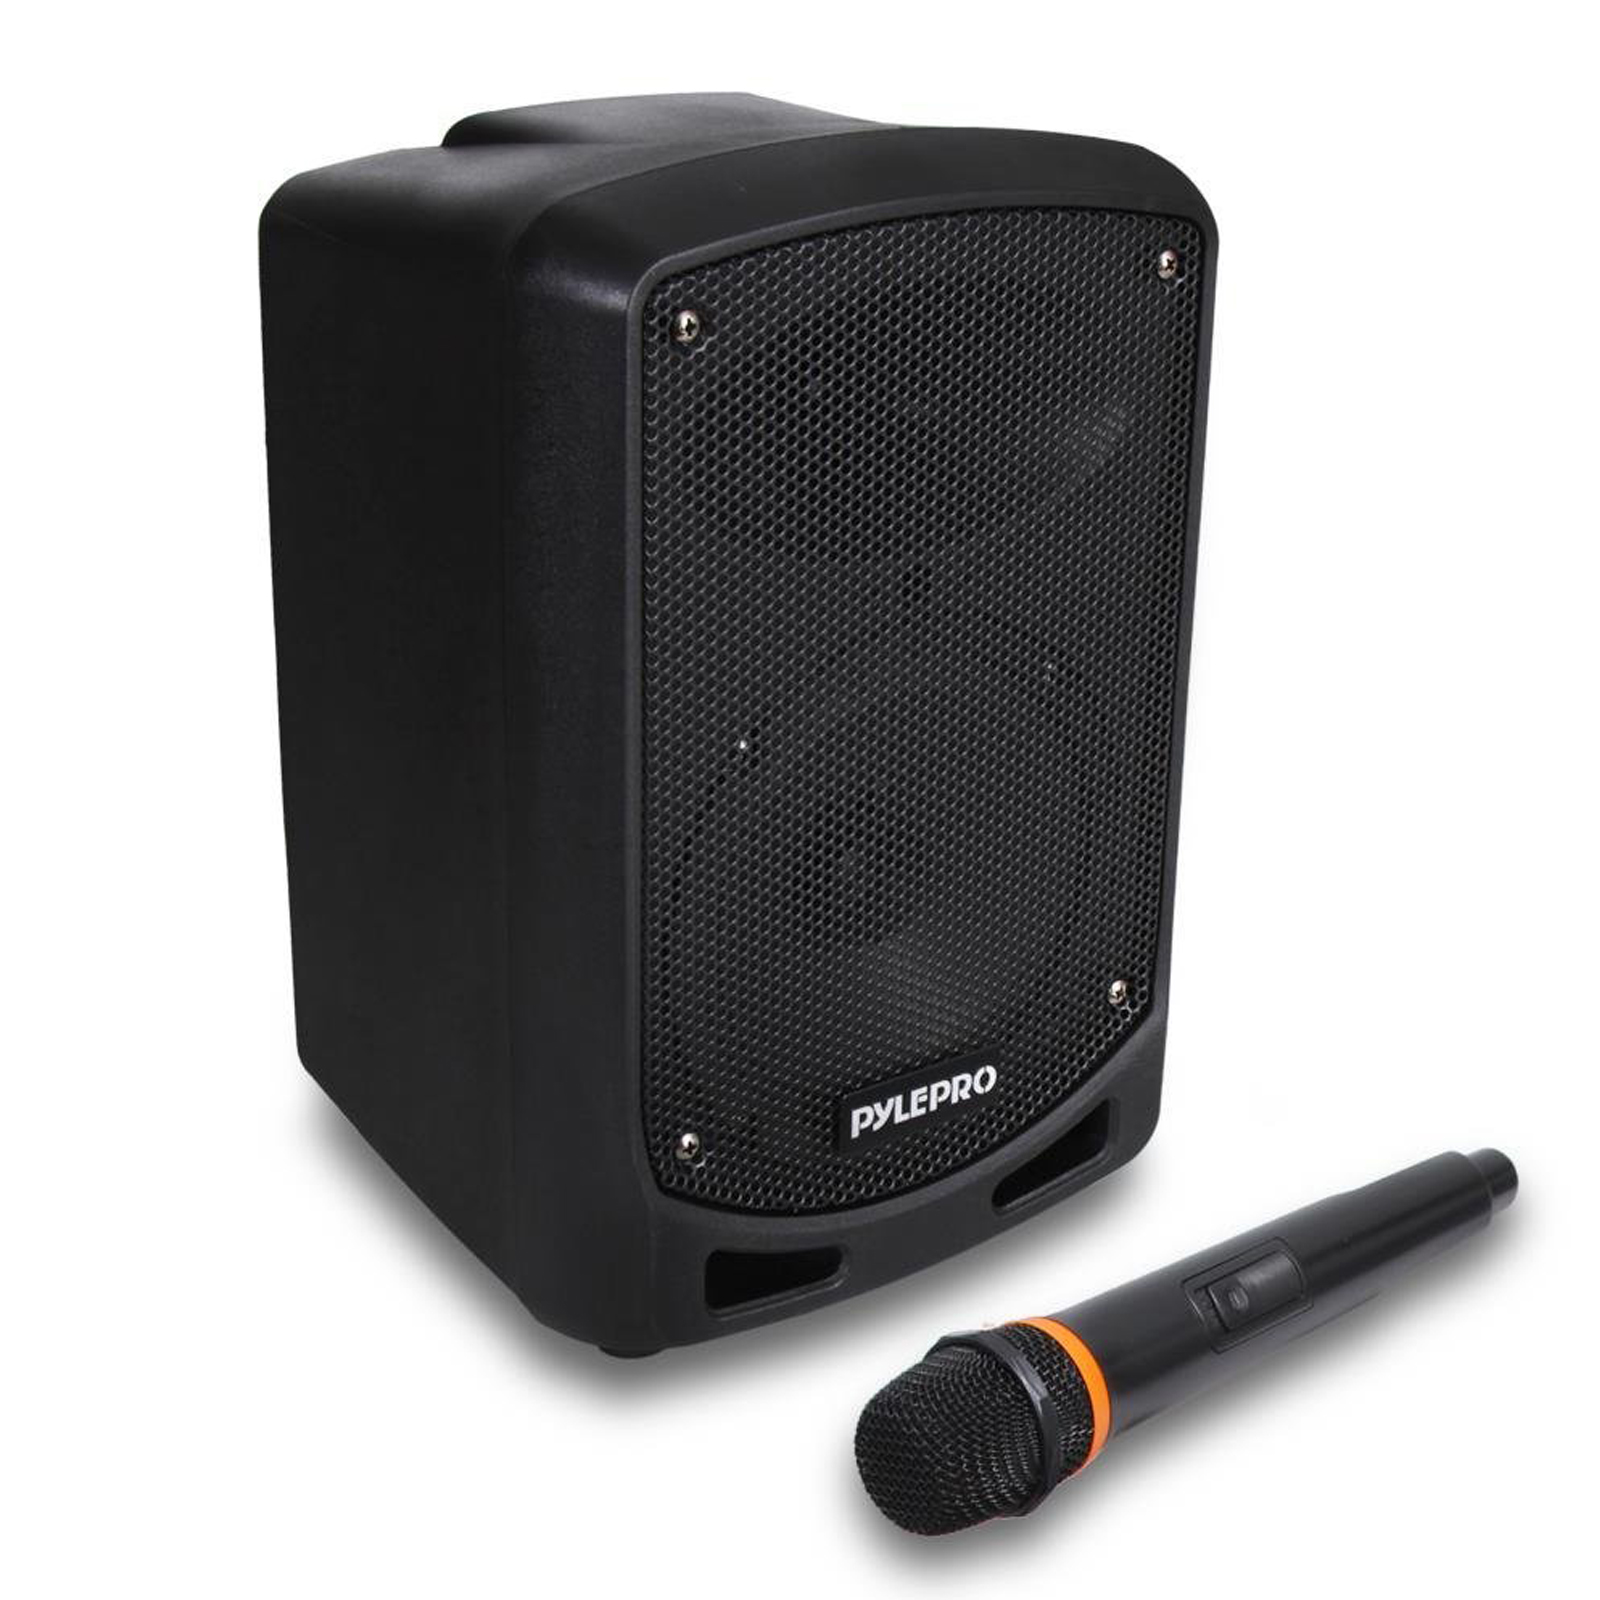 Pyle BT Karaoke PA Speaker - Indoor / Outdoor Portable Sound System with Wireless Mic, Audio Recording, re-chrg battery, USB / SD Reader, Stand Mount - For Party, Crowd Control